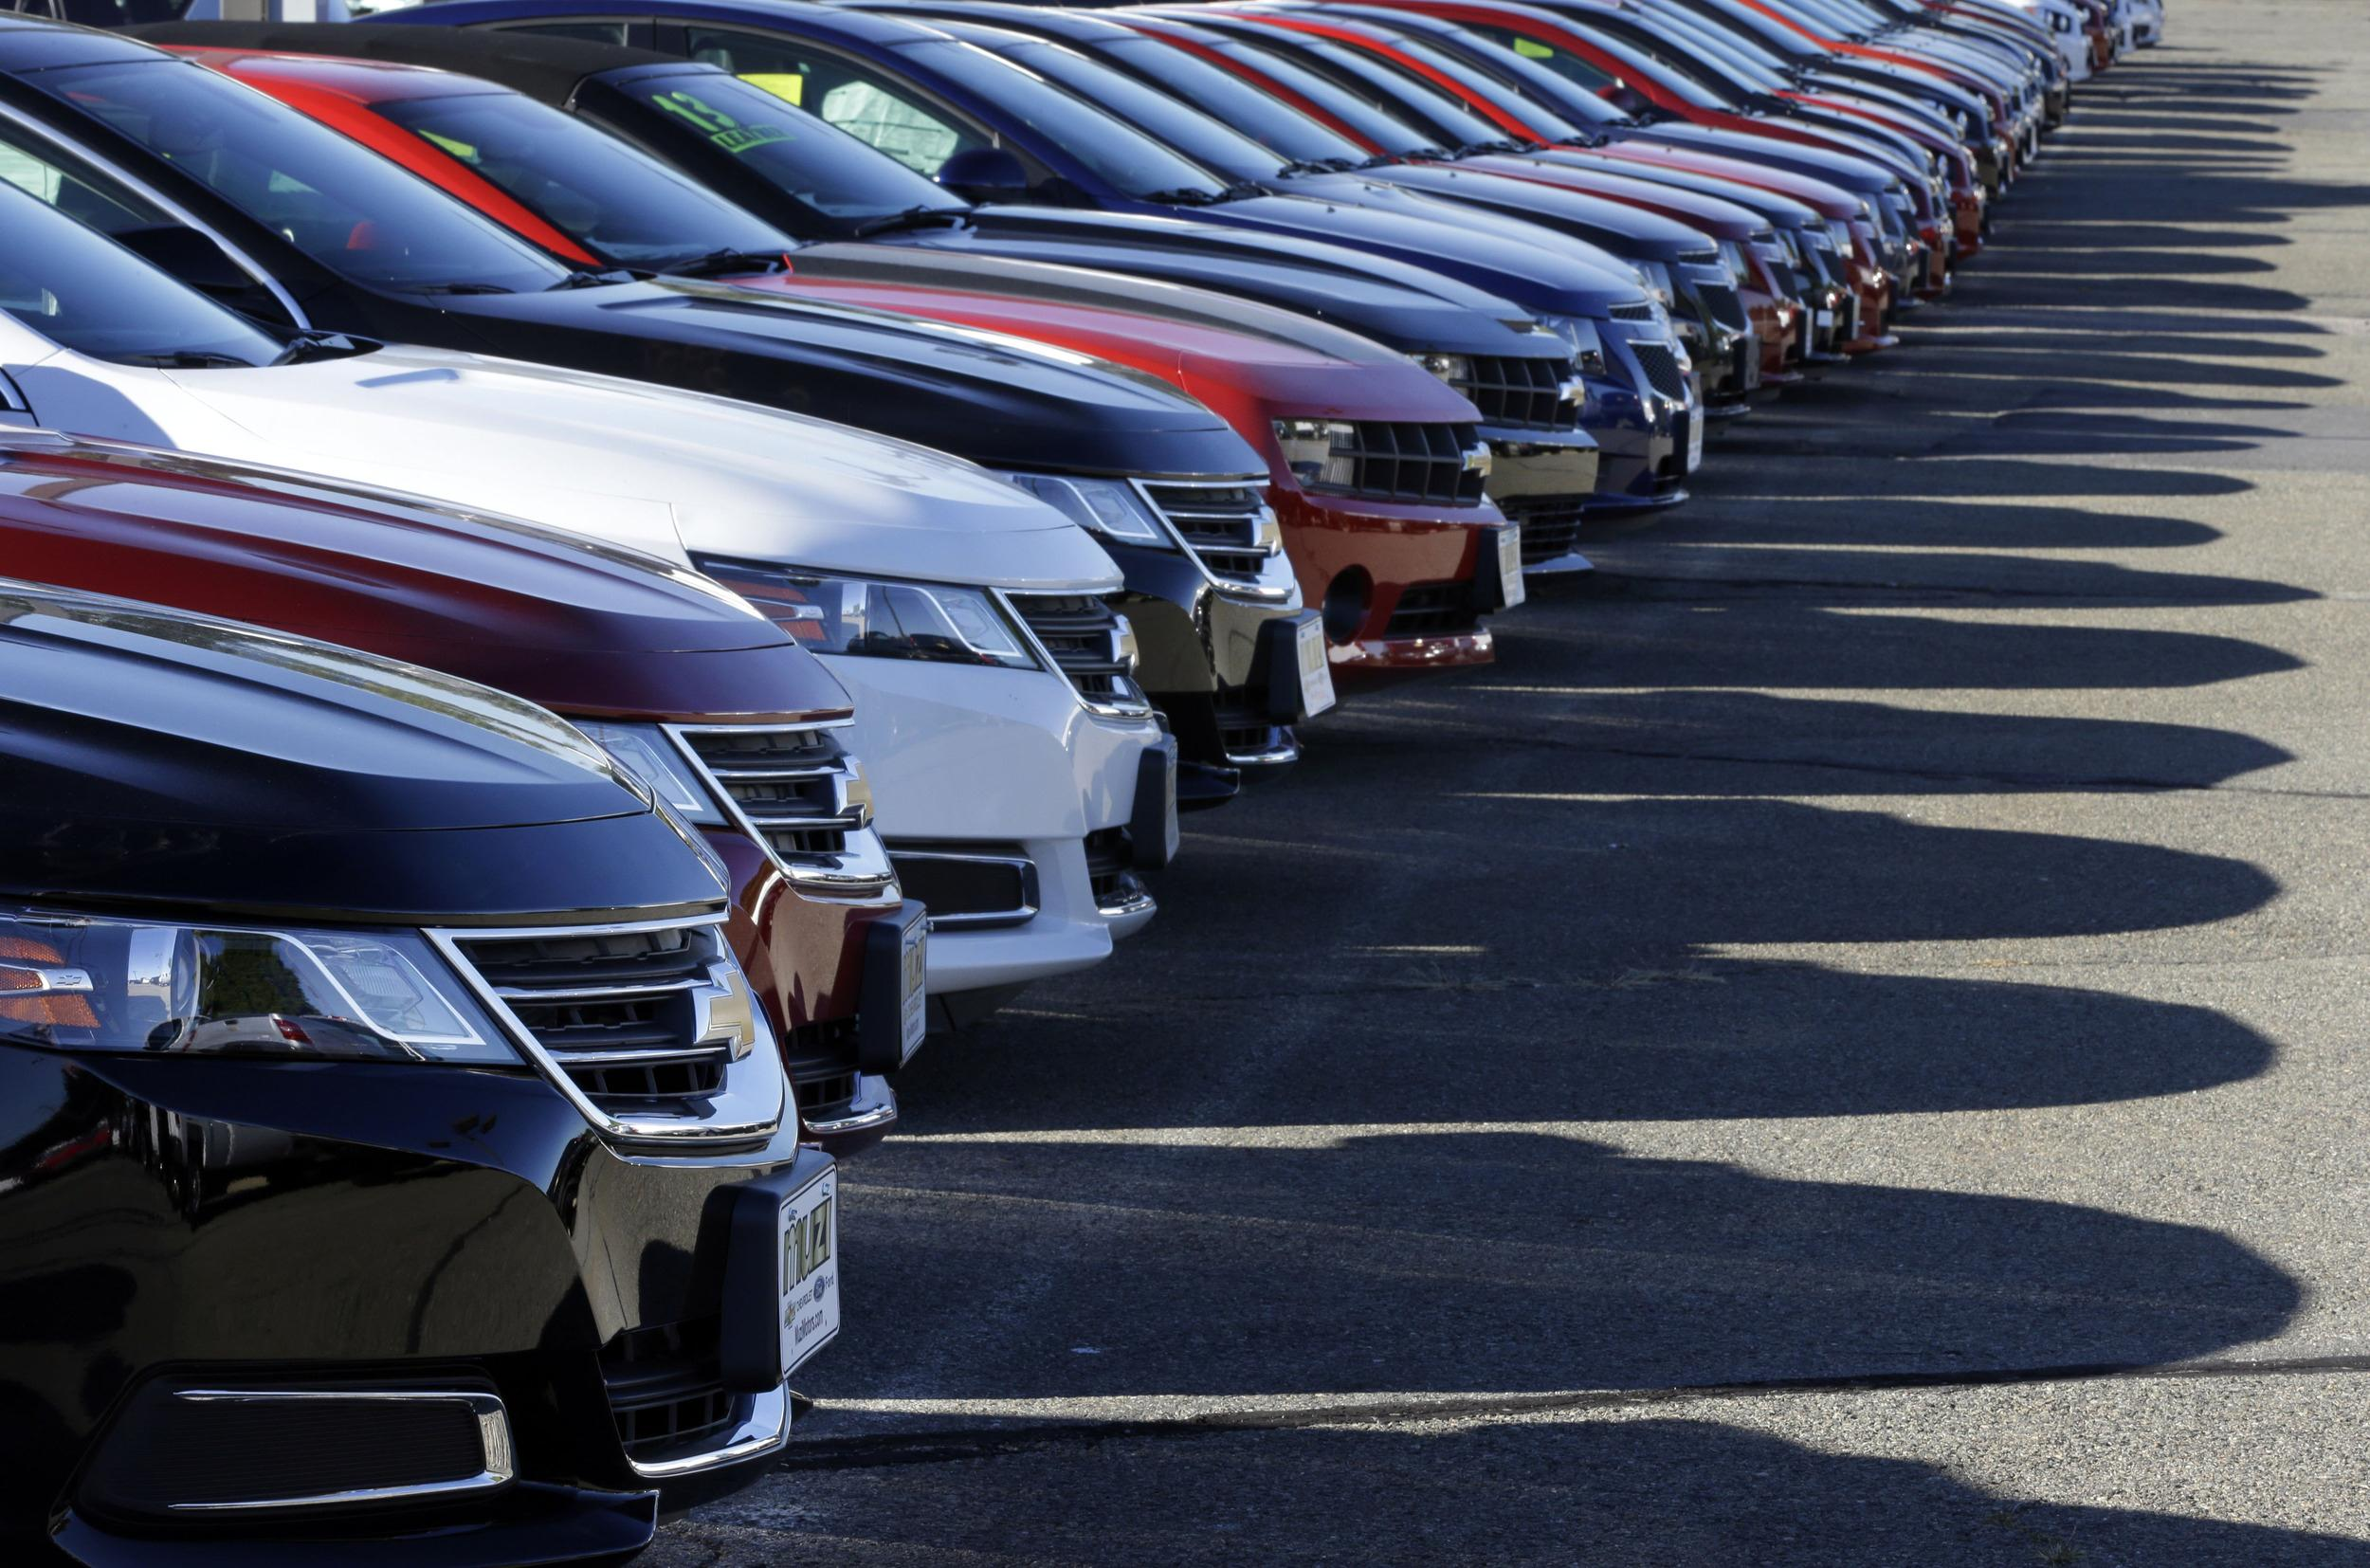 need a ride car sharing threatens auto sales new study finds nbc news. Black Bedroom Furniture Sets. Home Design Ideas